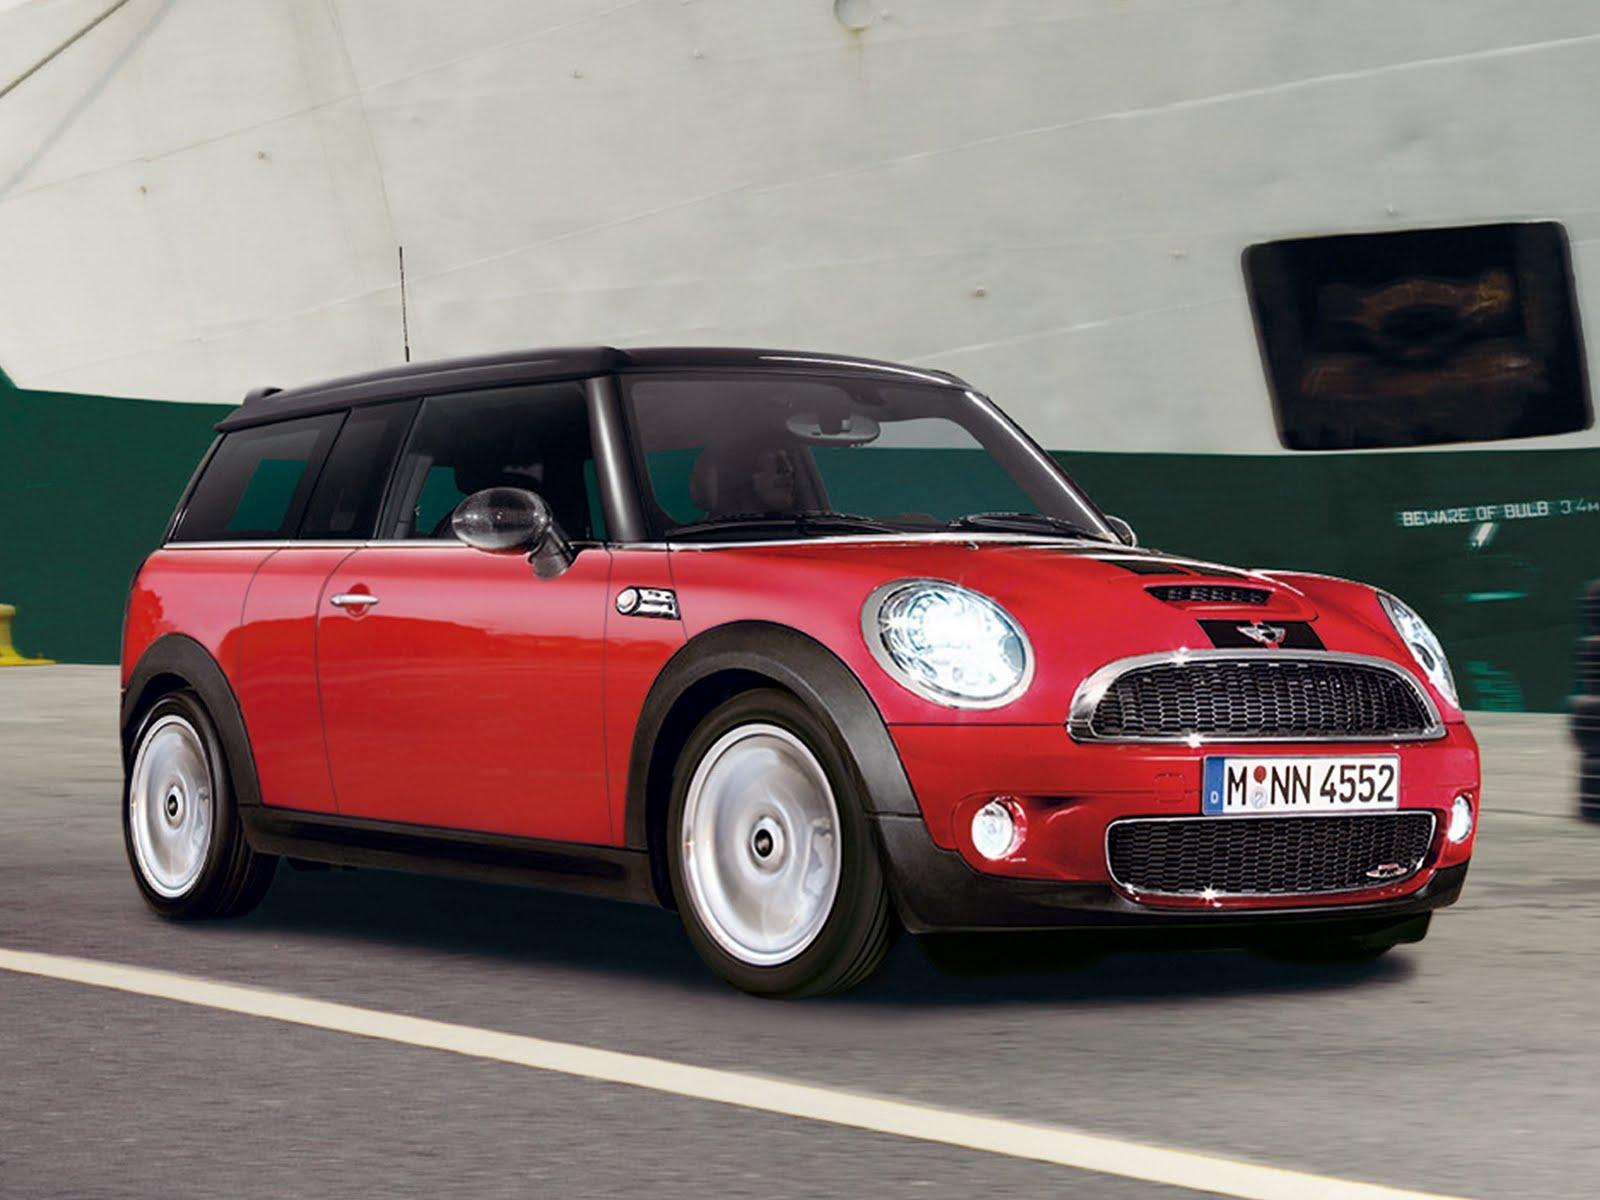 Used New COOPER MINI Clubman Cars Models John Cooper Works Cars Parts ...